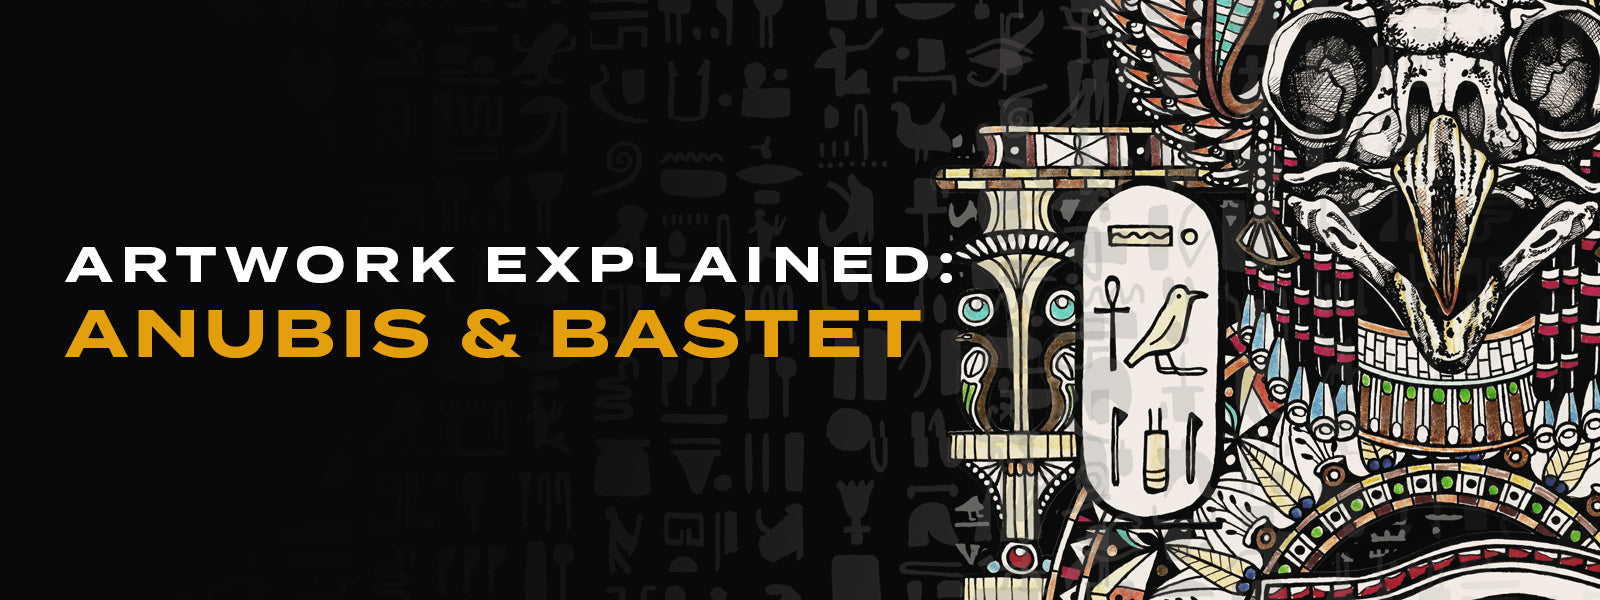 Artwork Explained: Anubis & Bastet